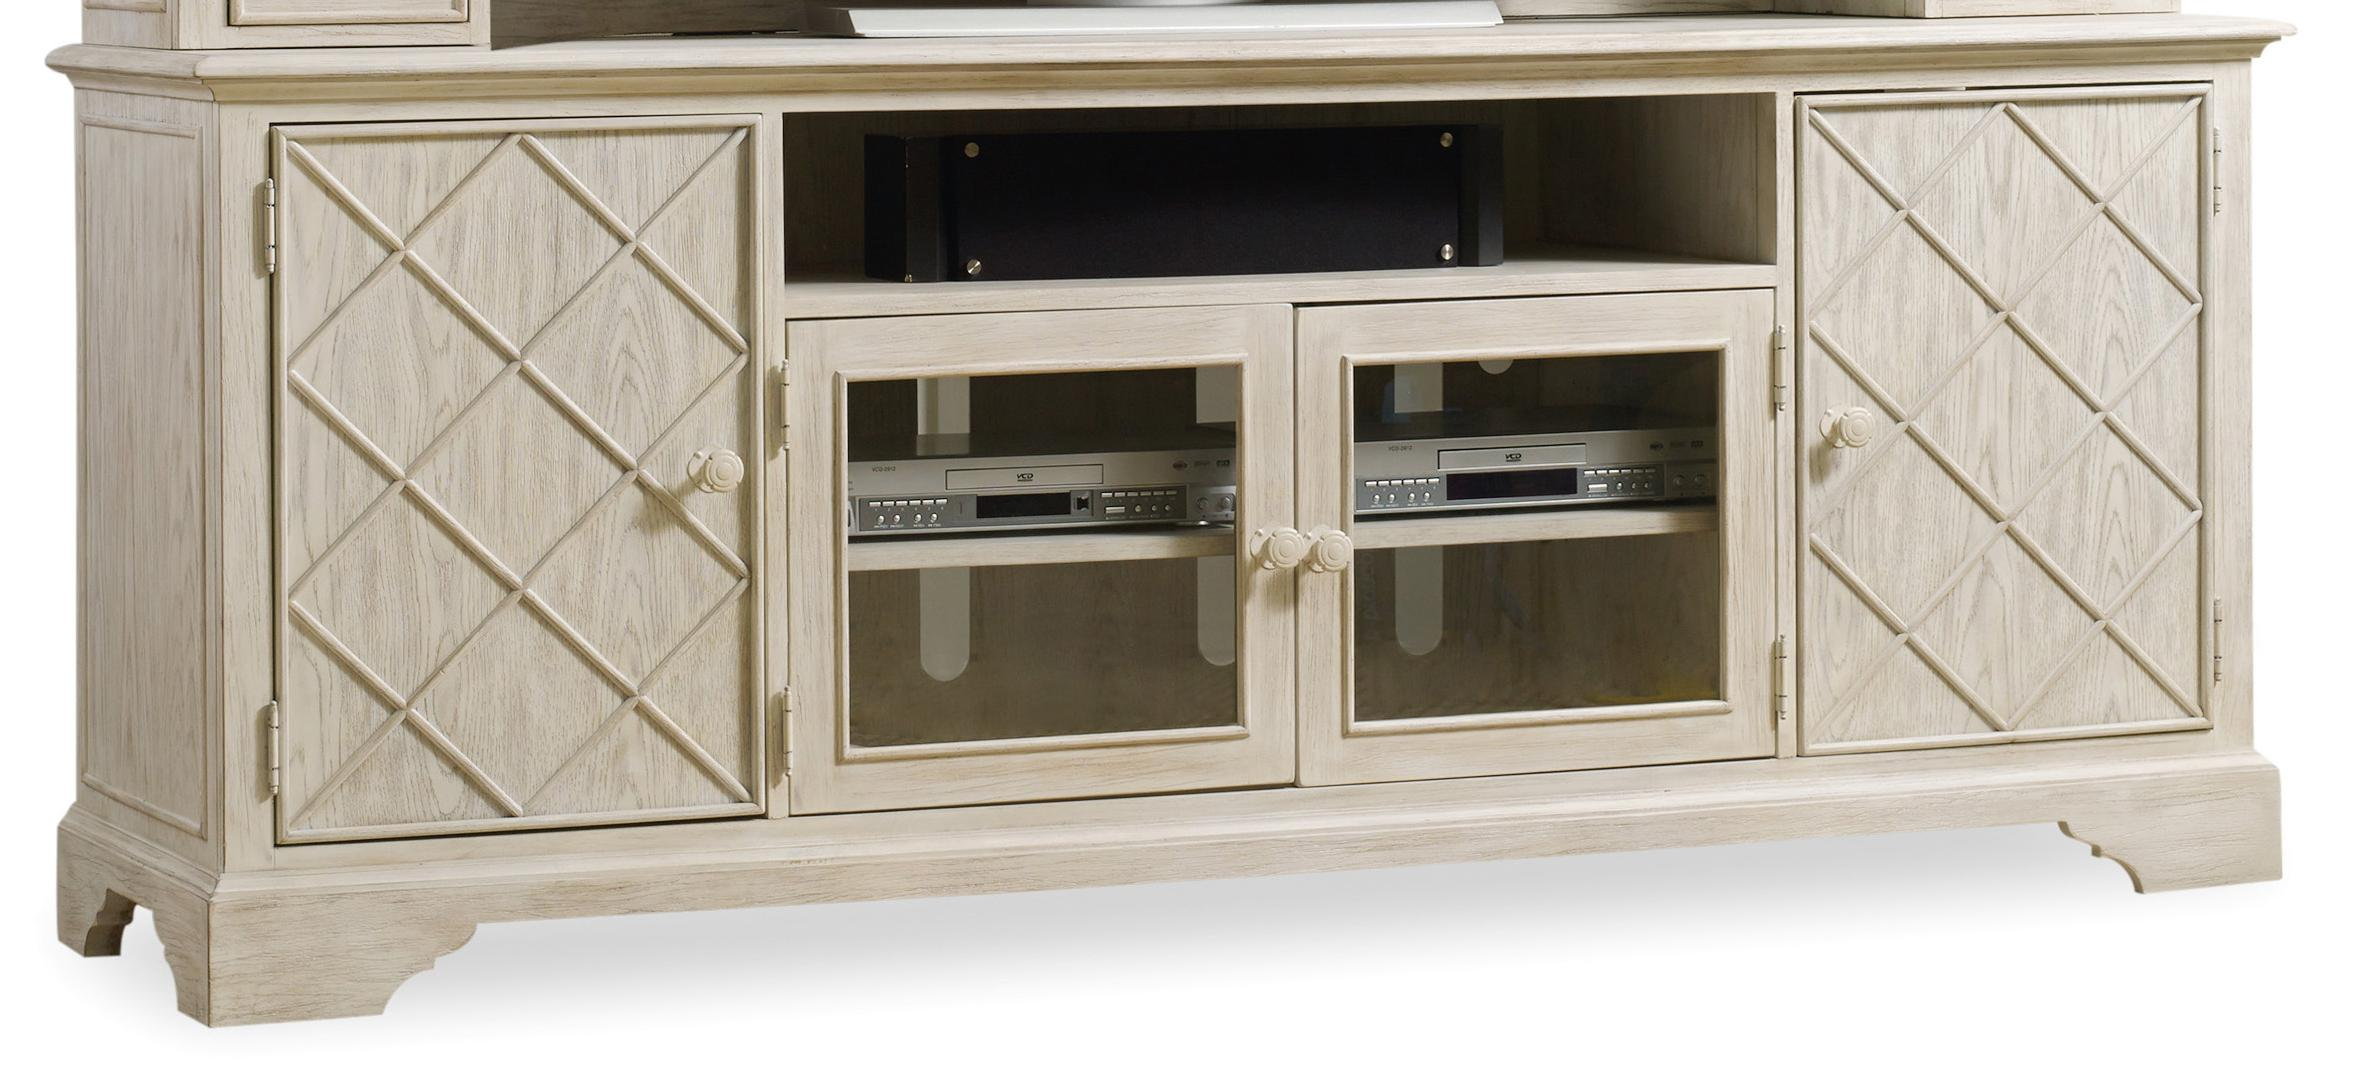 "Hooker Furniture Sunset Point 80"" Entertainment Console - Item Number: 5325-55480"